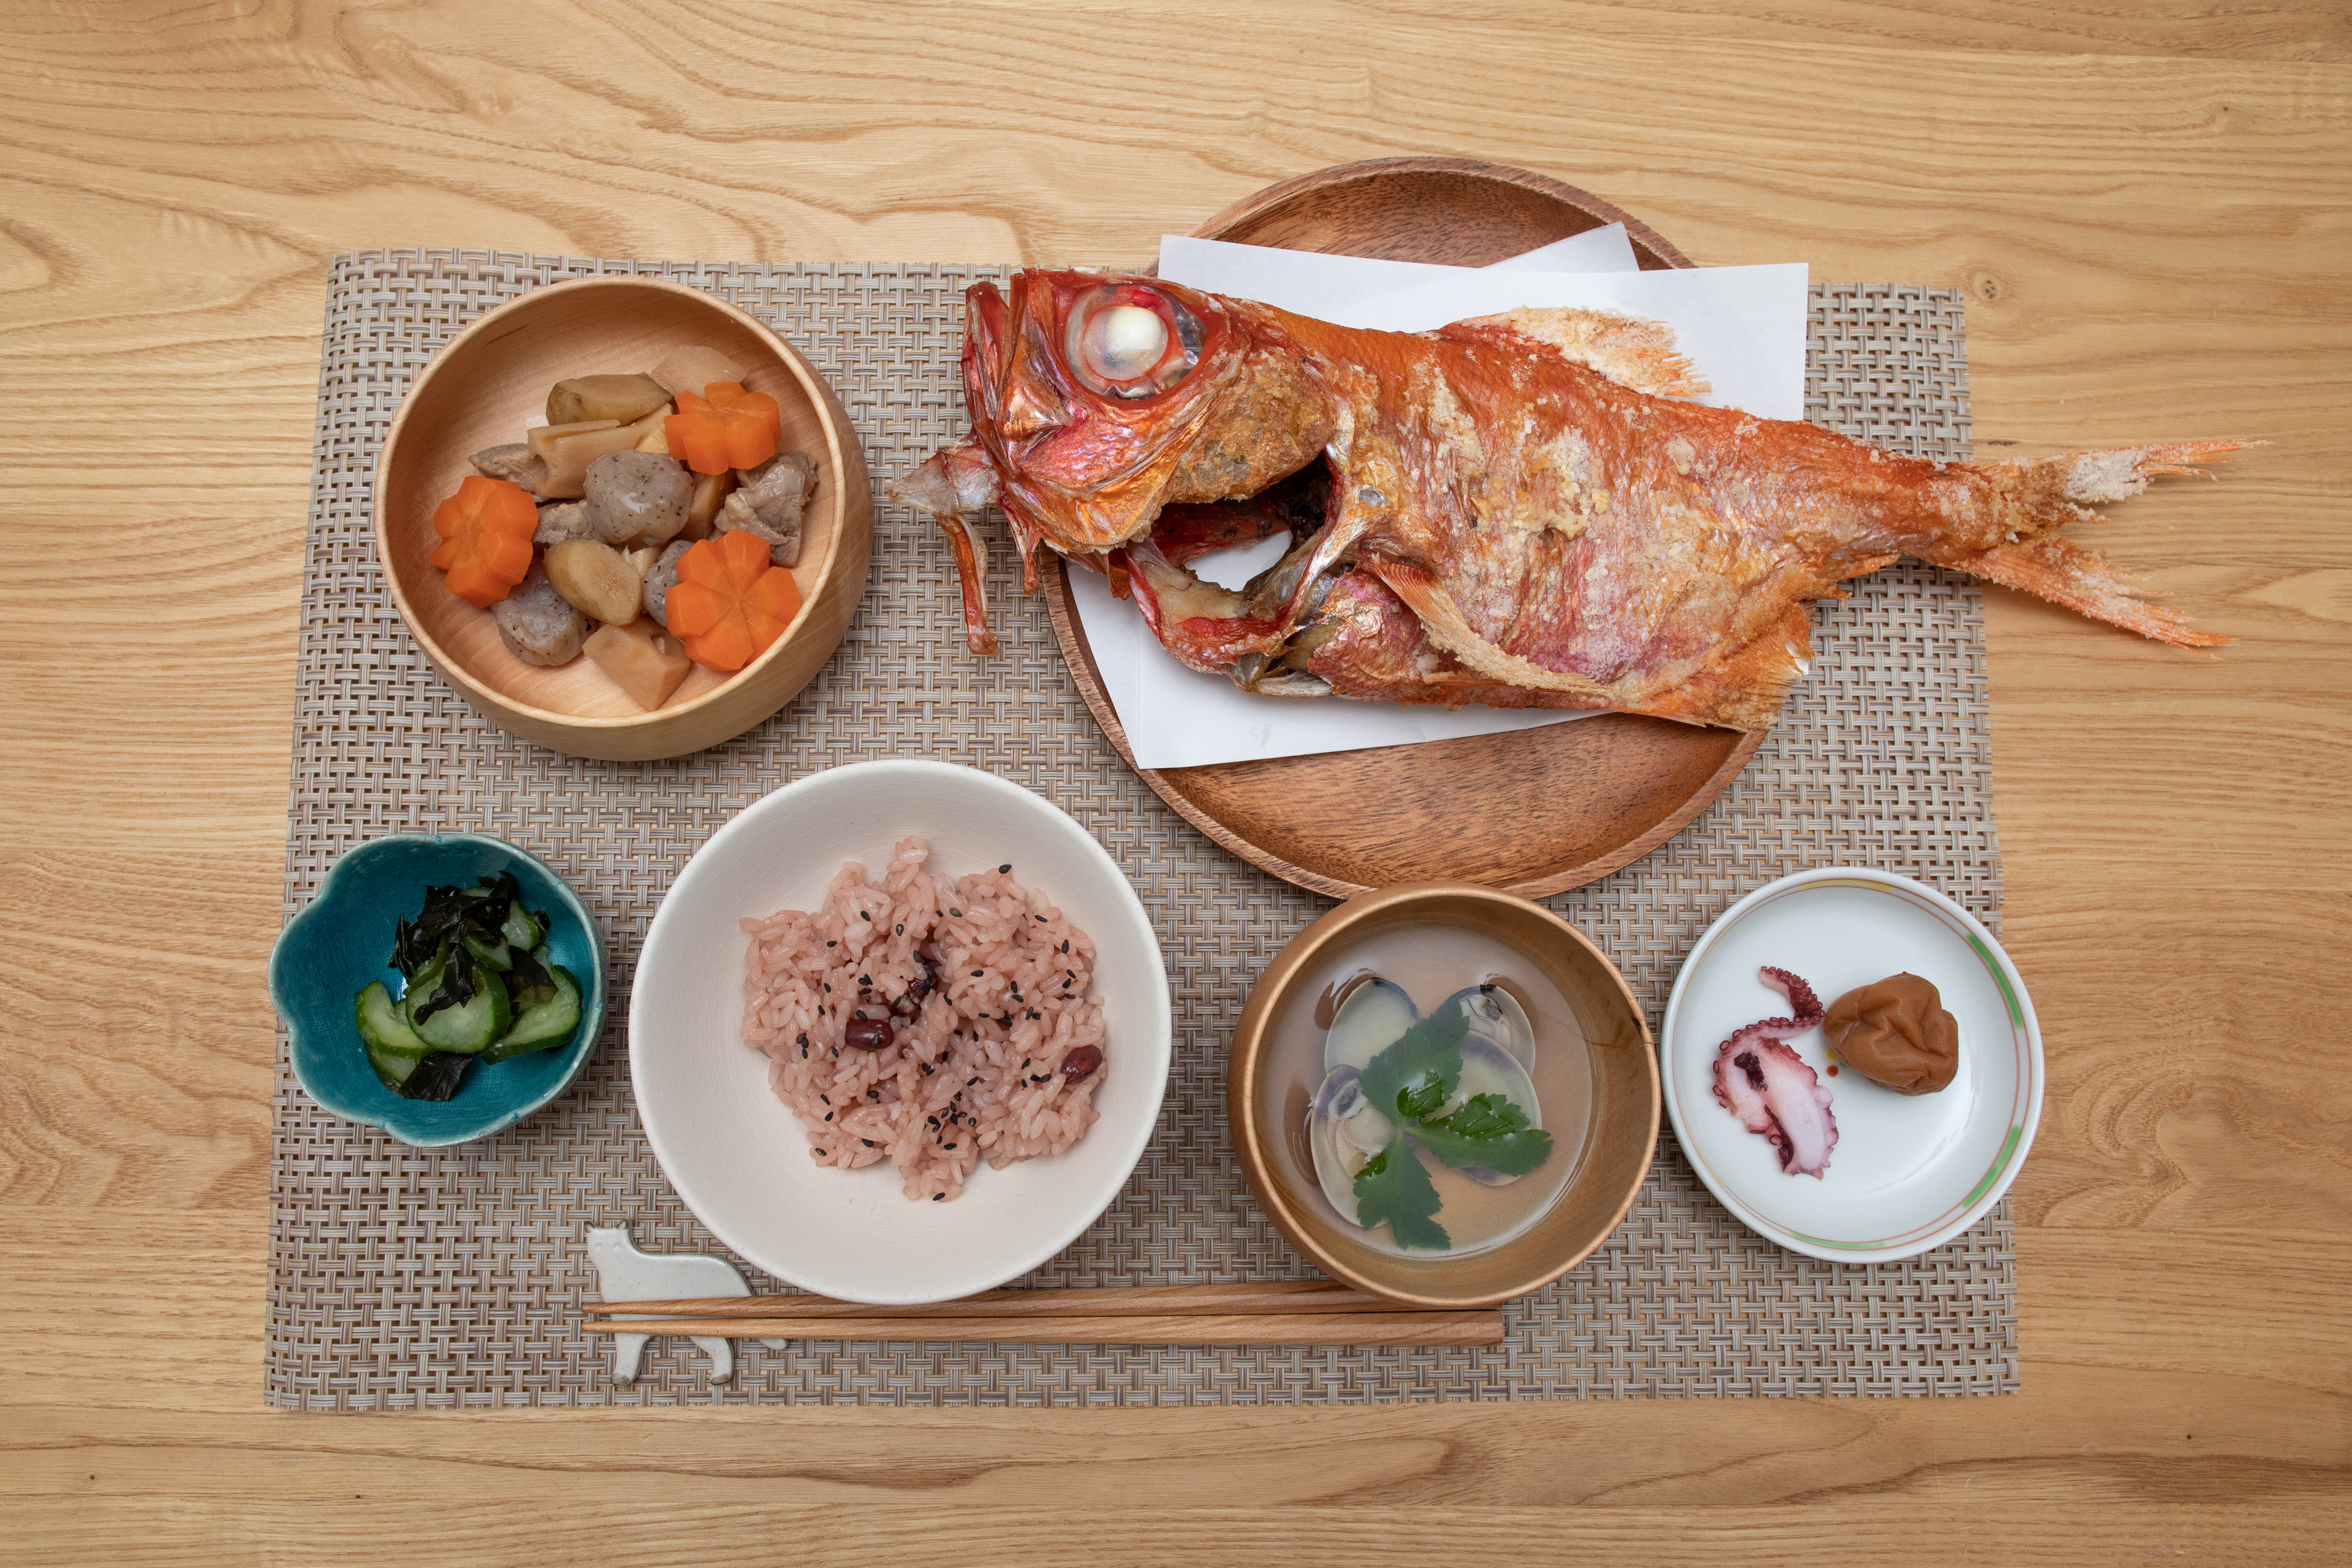 foods in round bowls on brown mat